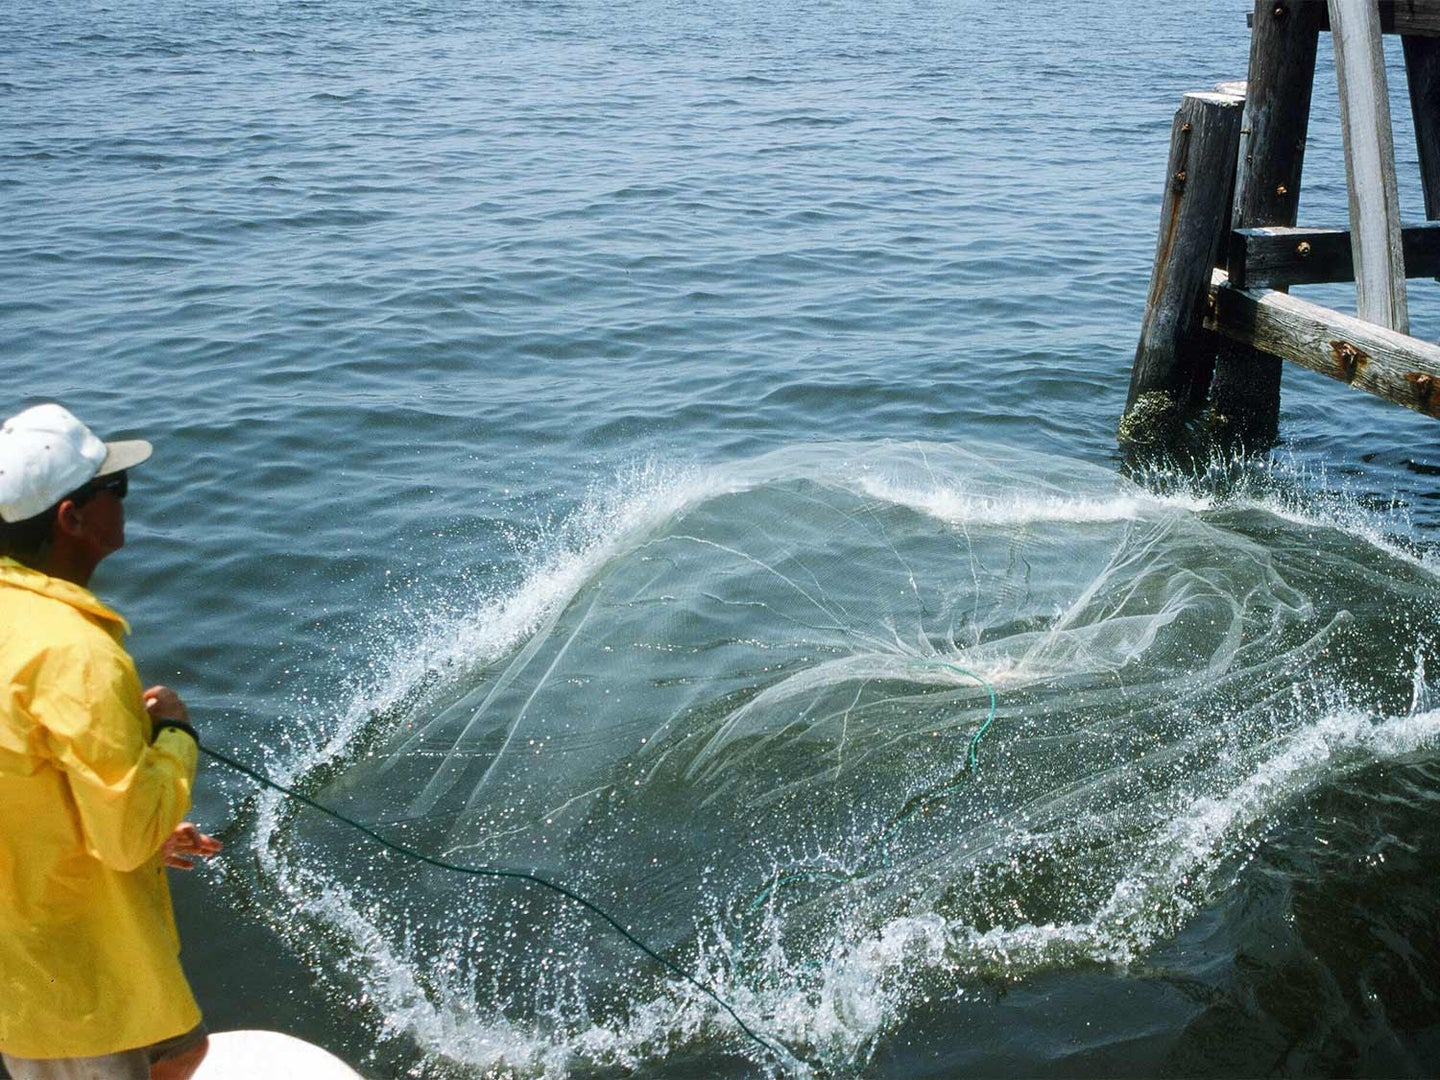 fisherman casting a net in the water